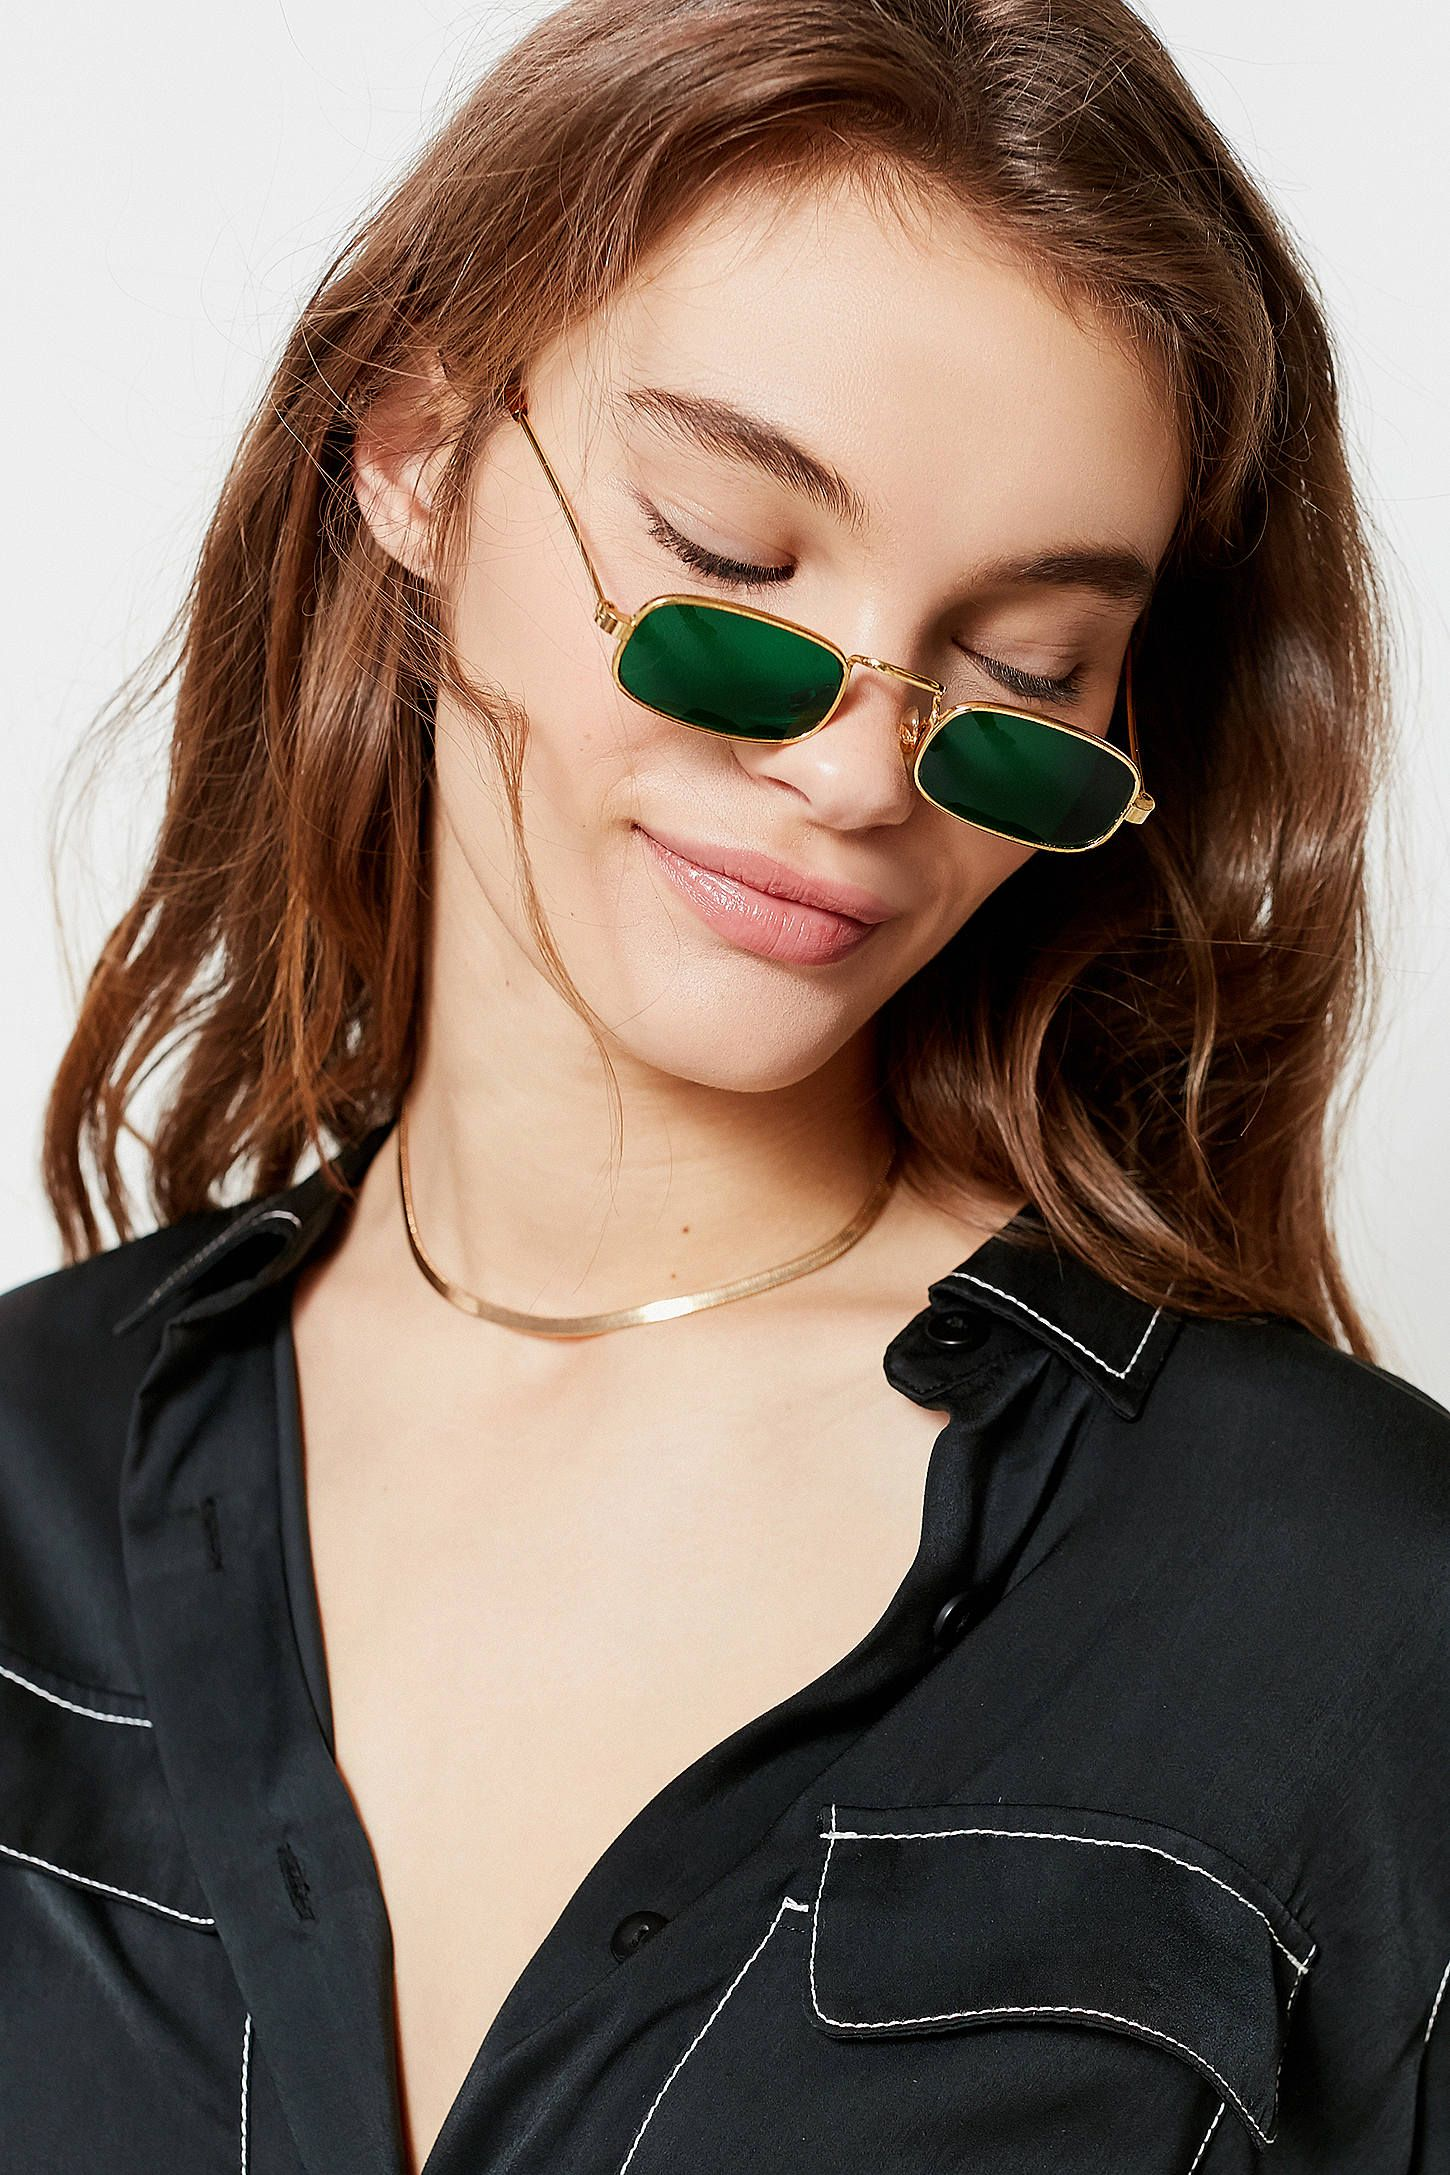 92507d6a79 Replay Vintage Clueless Square Sunglasses in 2019 | To buy ...